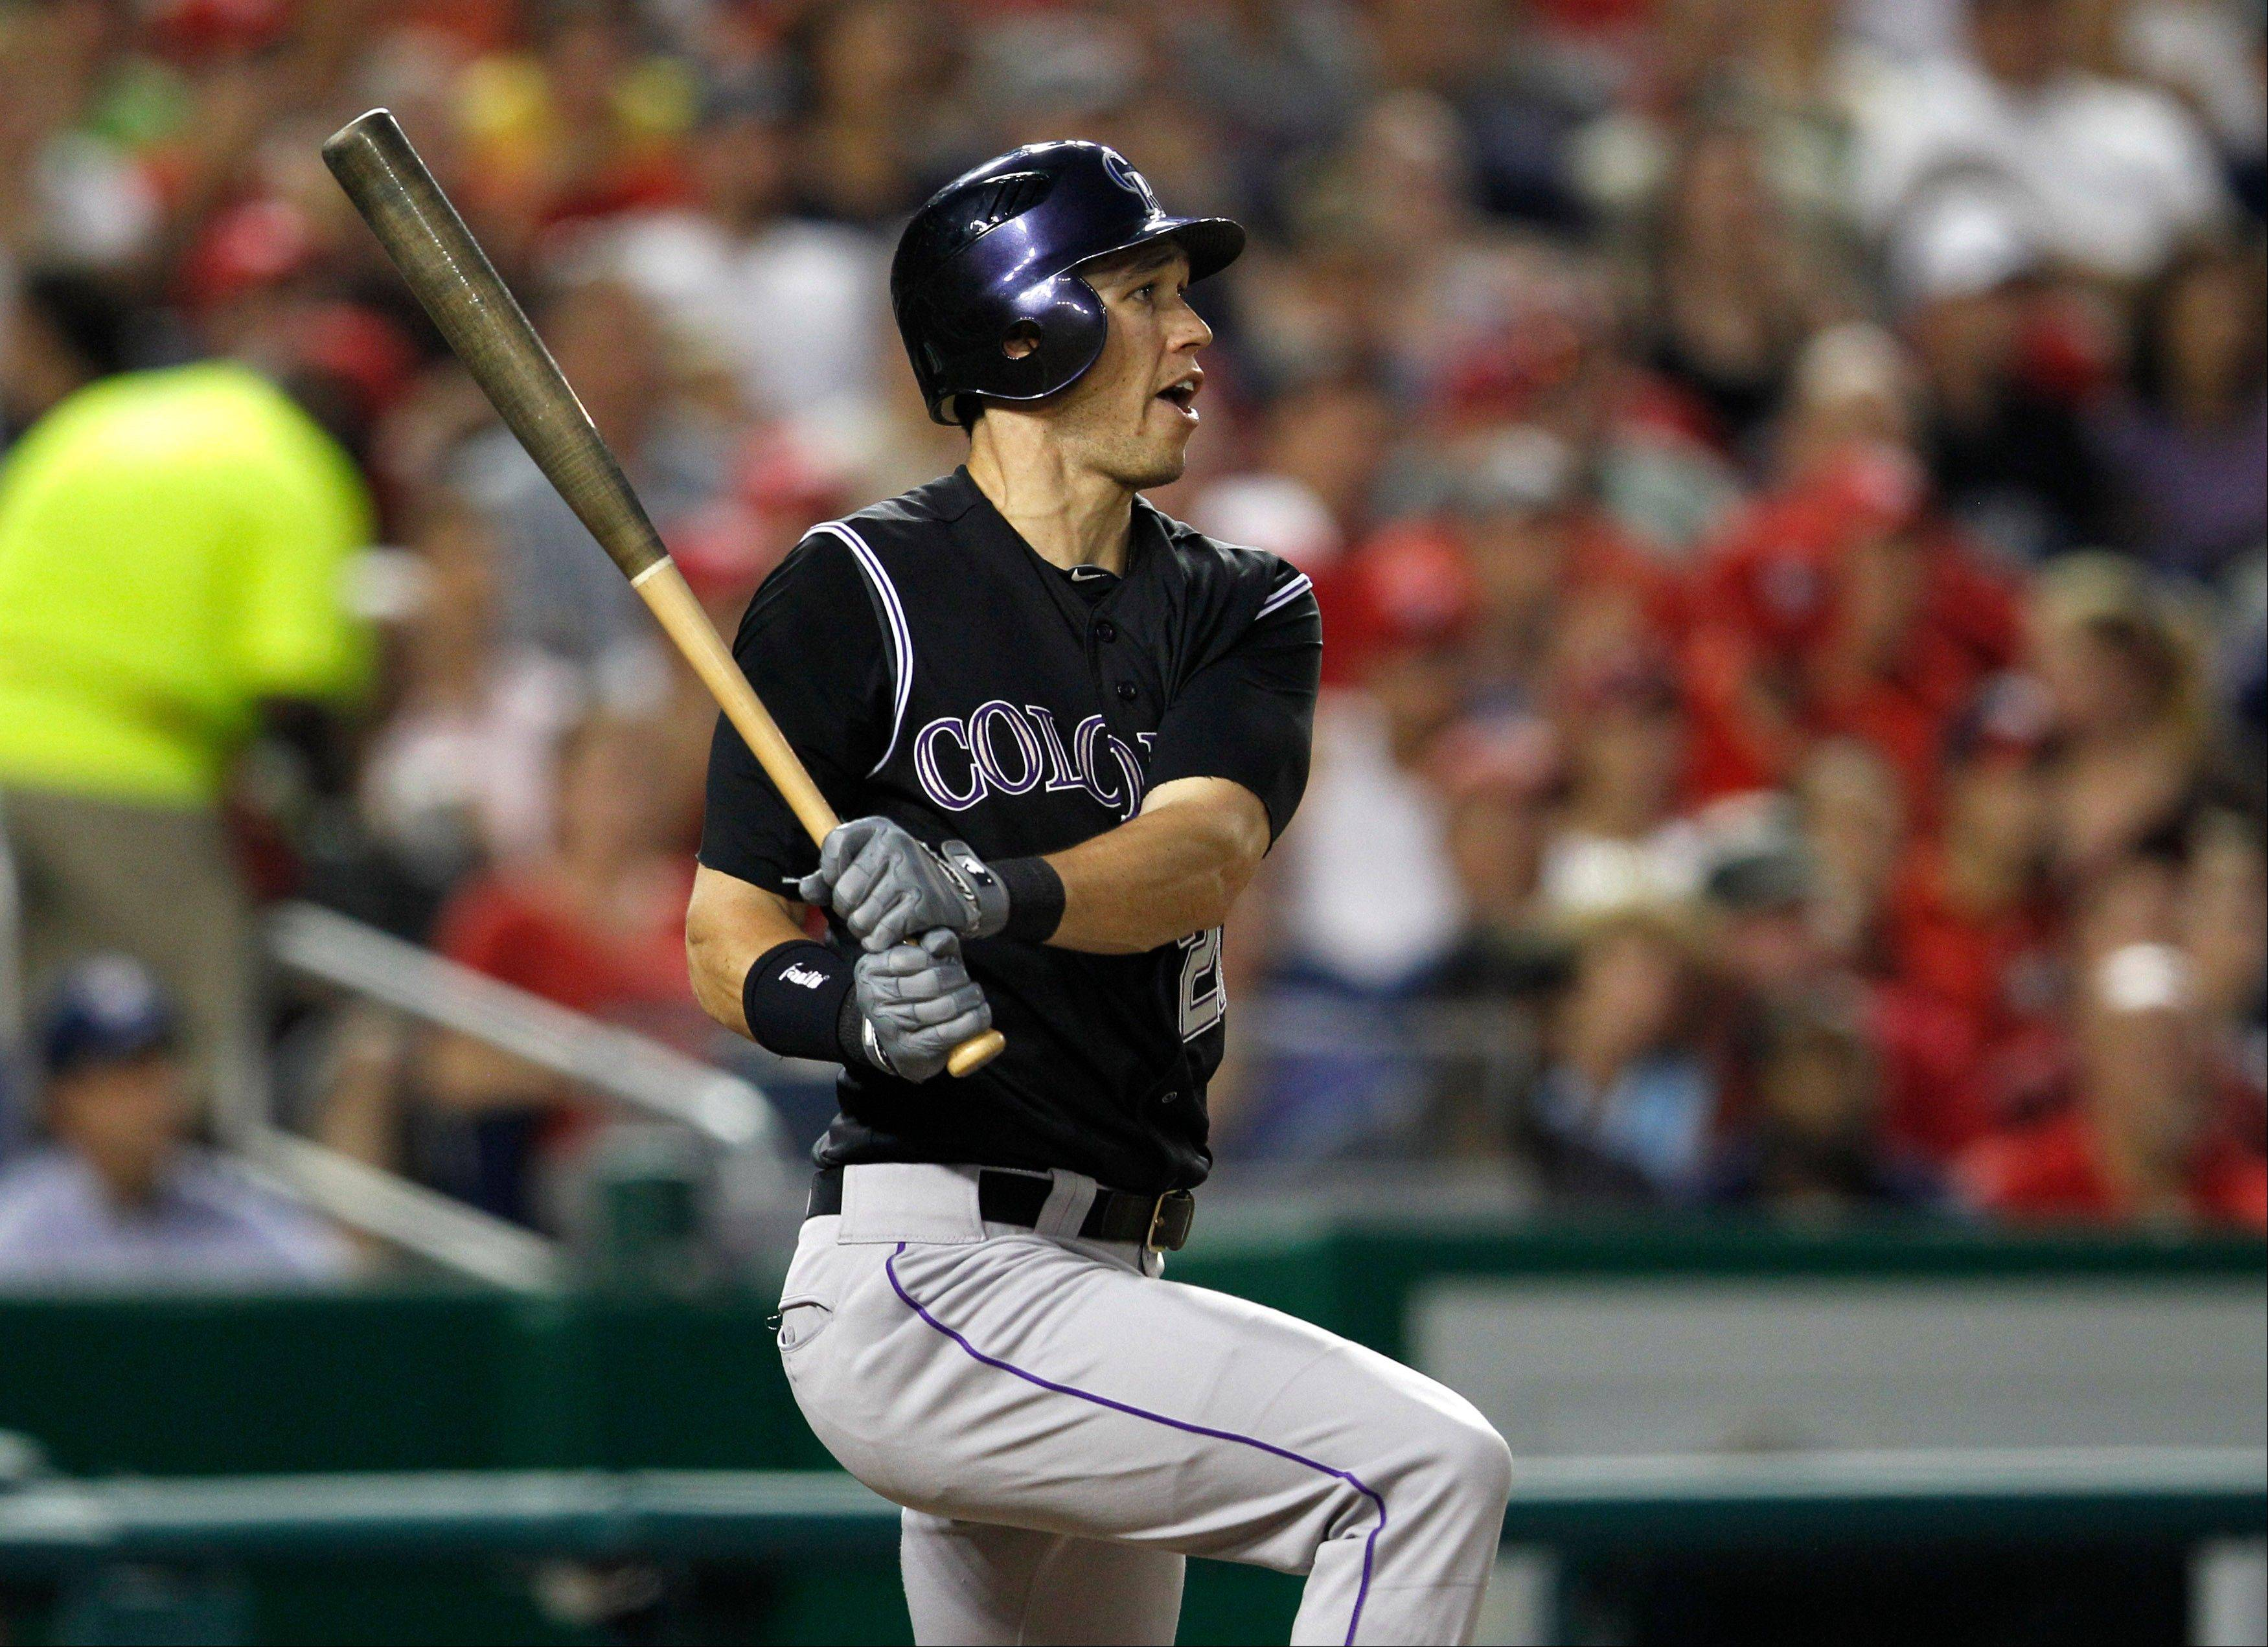 Colorado's Tyler Colvin hits a single against the Washington Nationals during the sixth inning Friday in Washington.